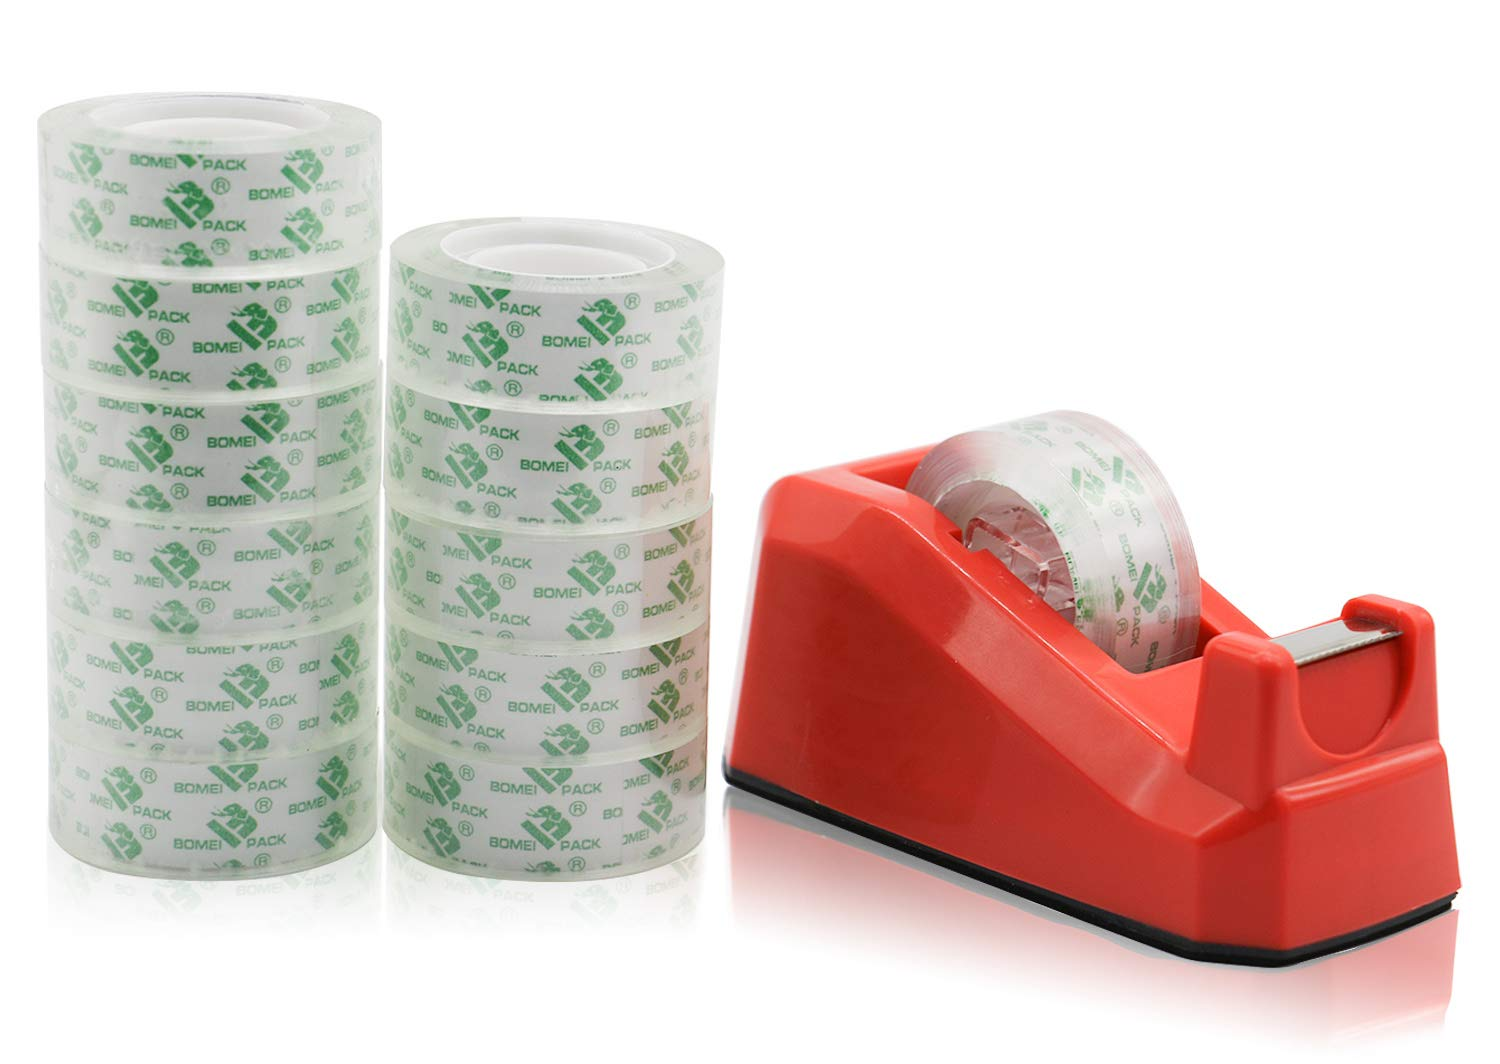 Cute Red Desk Tape Dispensers, 1 Pack with 12Rolls Transparent Tape, 1 Inch Core, for School, Office and Home DIY, BOMEI PACK